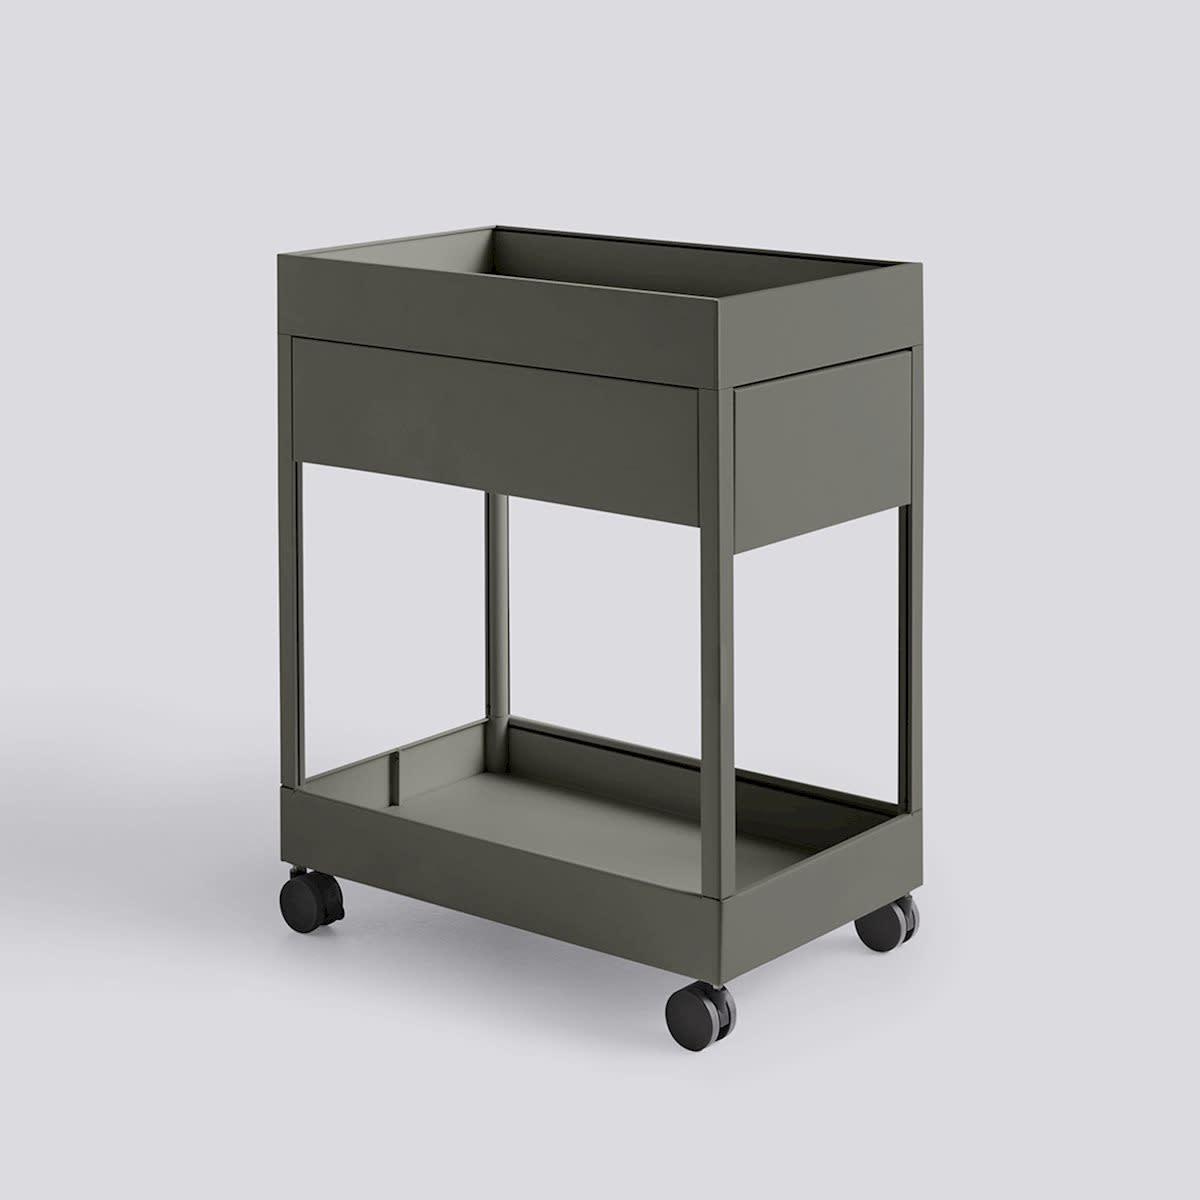 New Order Trolley - A 1 Drawer and tray top incl. lock-2